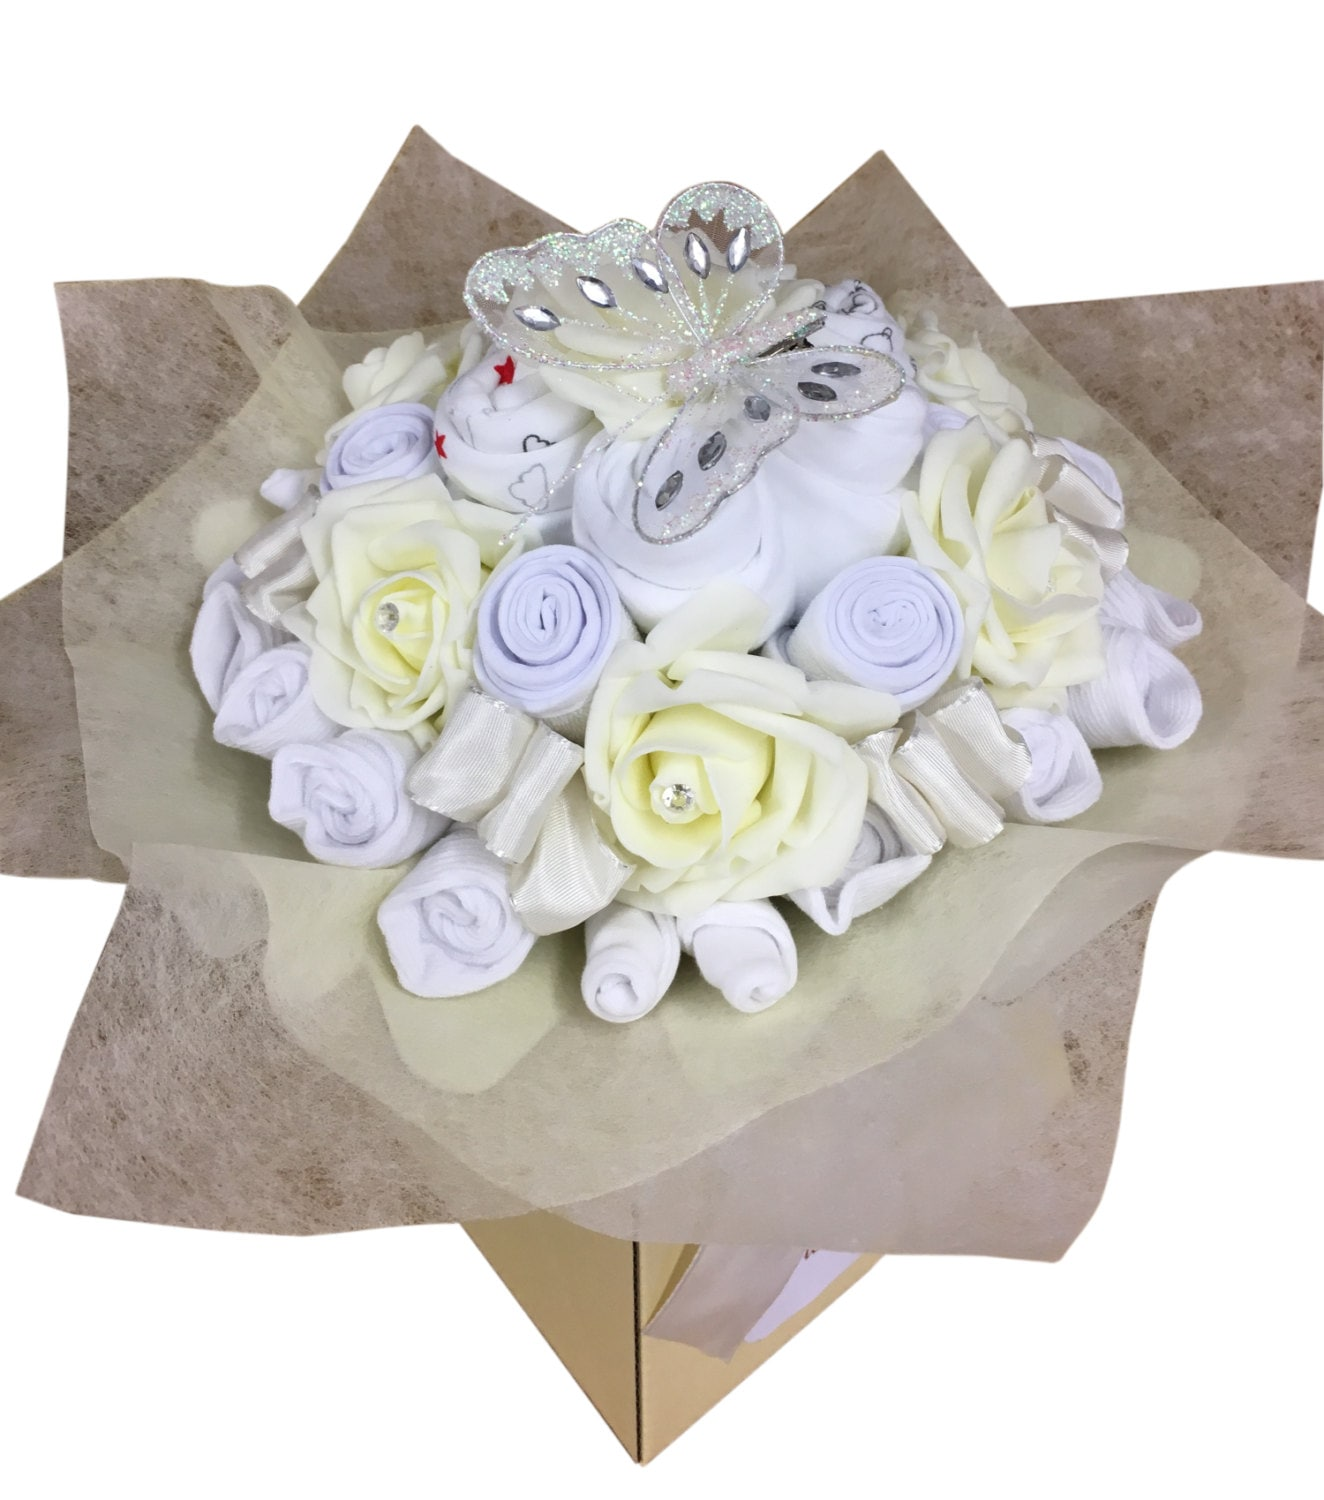 Baby Gift Bouquet New Zealand : New baby gift clothes bouquet shower